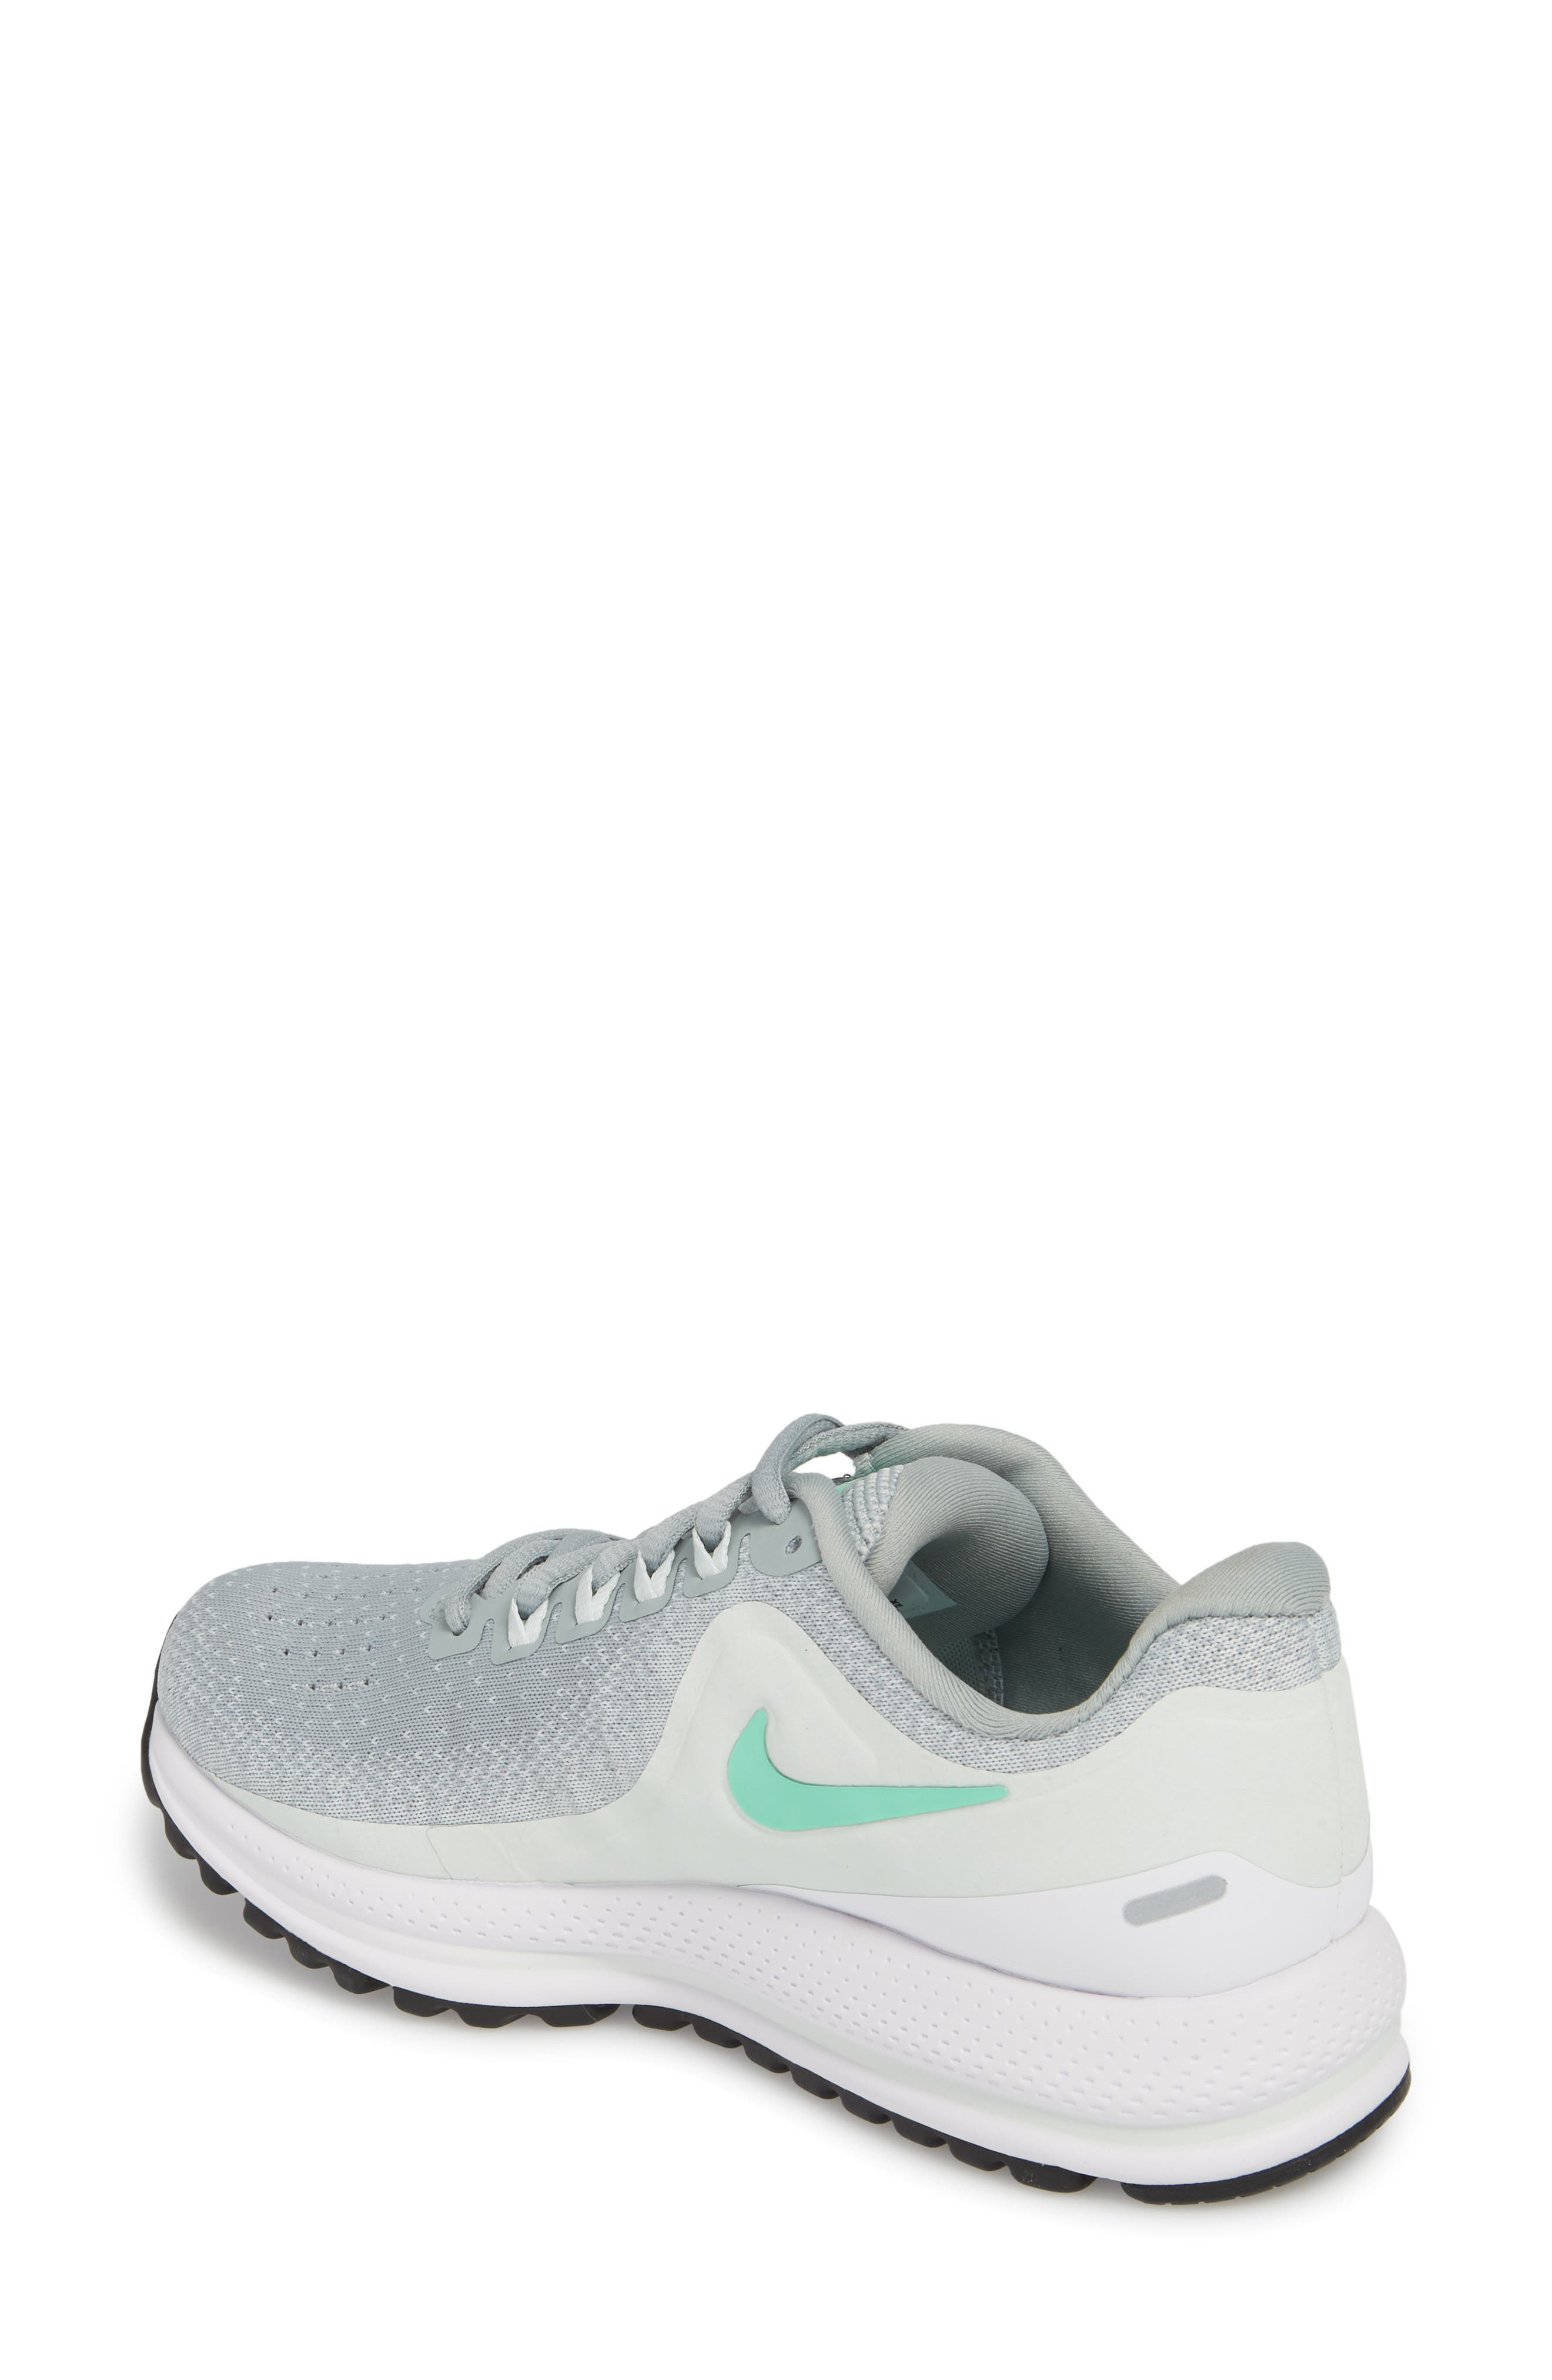 Air Zoom Vomero 13 Running Shoe,                             Alternate thumbnail 2, color,                             Light Pumice/ Green Glow